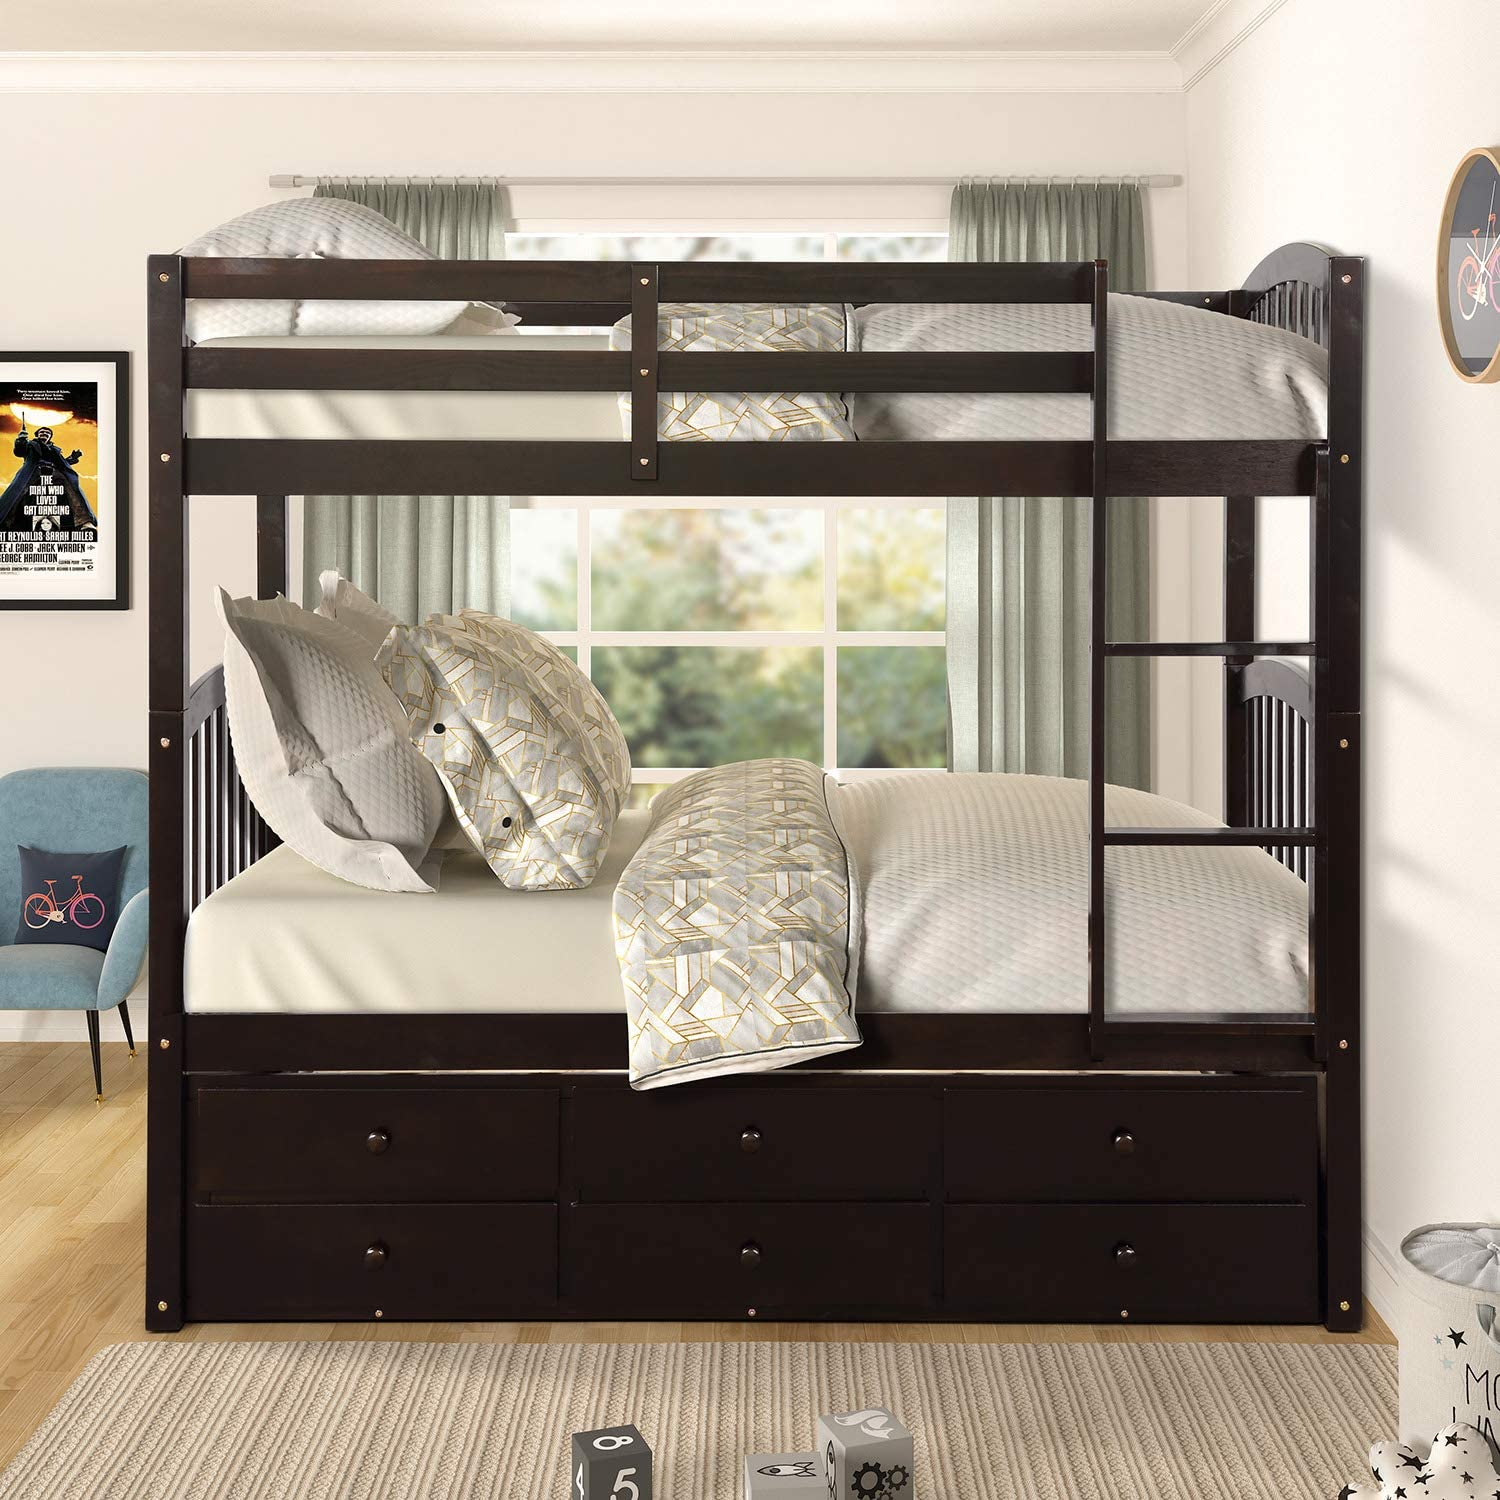 Knocbel Solid Wood Bunk Bed Twin-Over-Twin with Trundle & 3 Drawers, 175 Lbs/ 200 Lbs Capacity Platform Bed Frame with Safety Guard Rail & Ladder (Espresso)